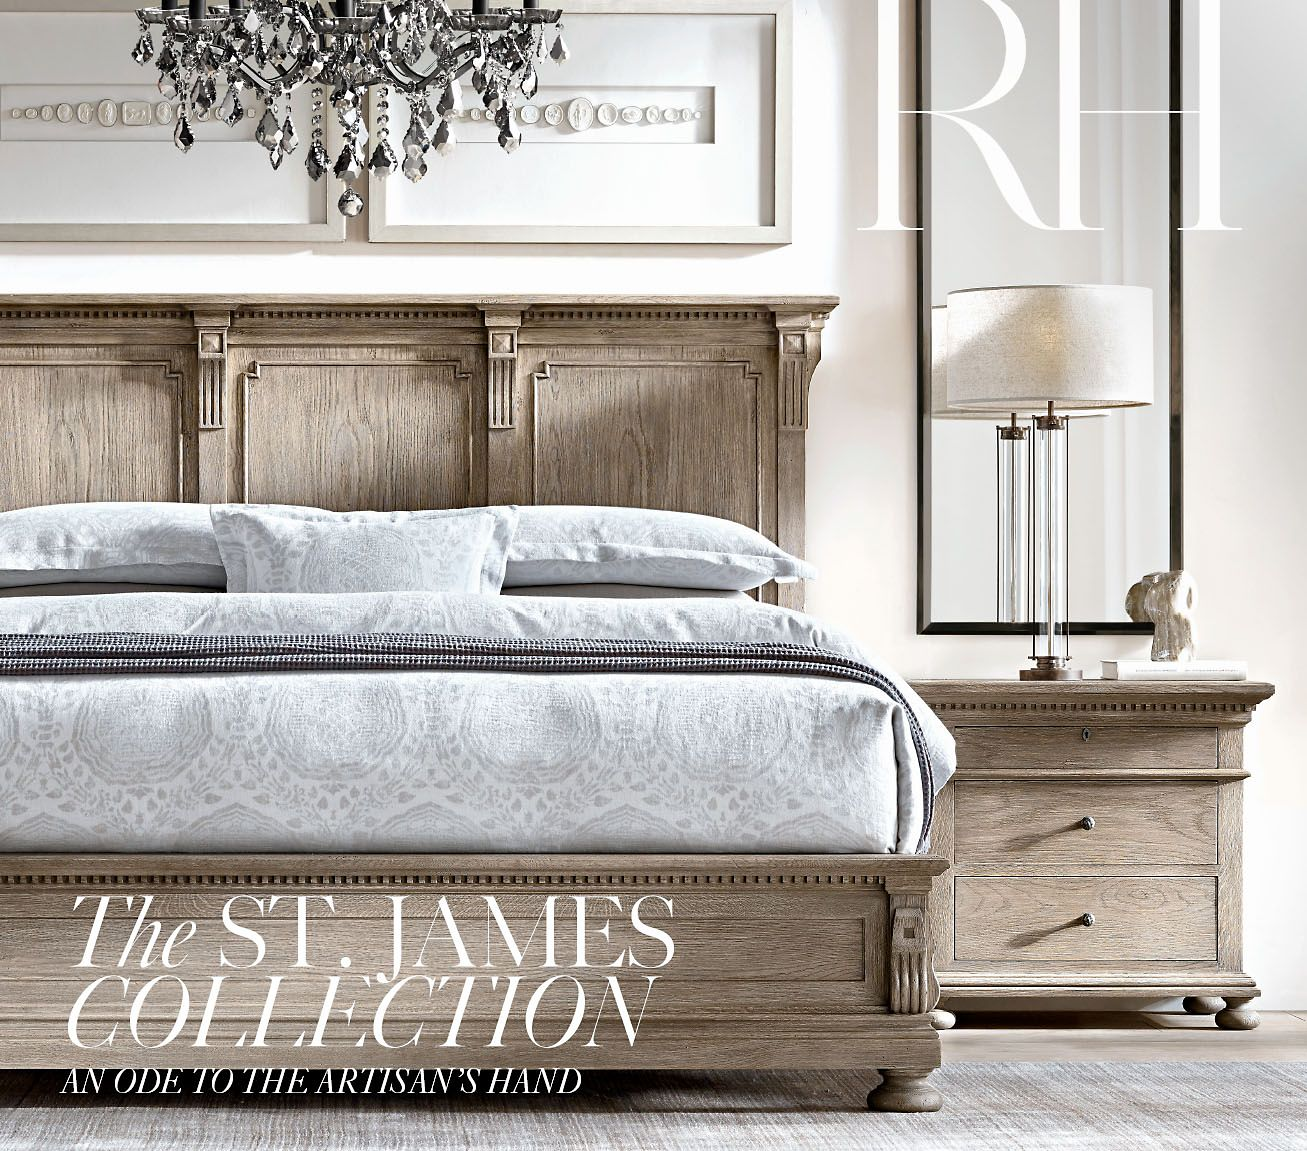 Restoration Hardware An Ode to the Artisan s Hand The St James